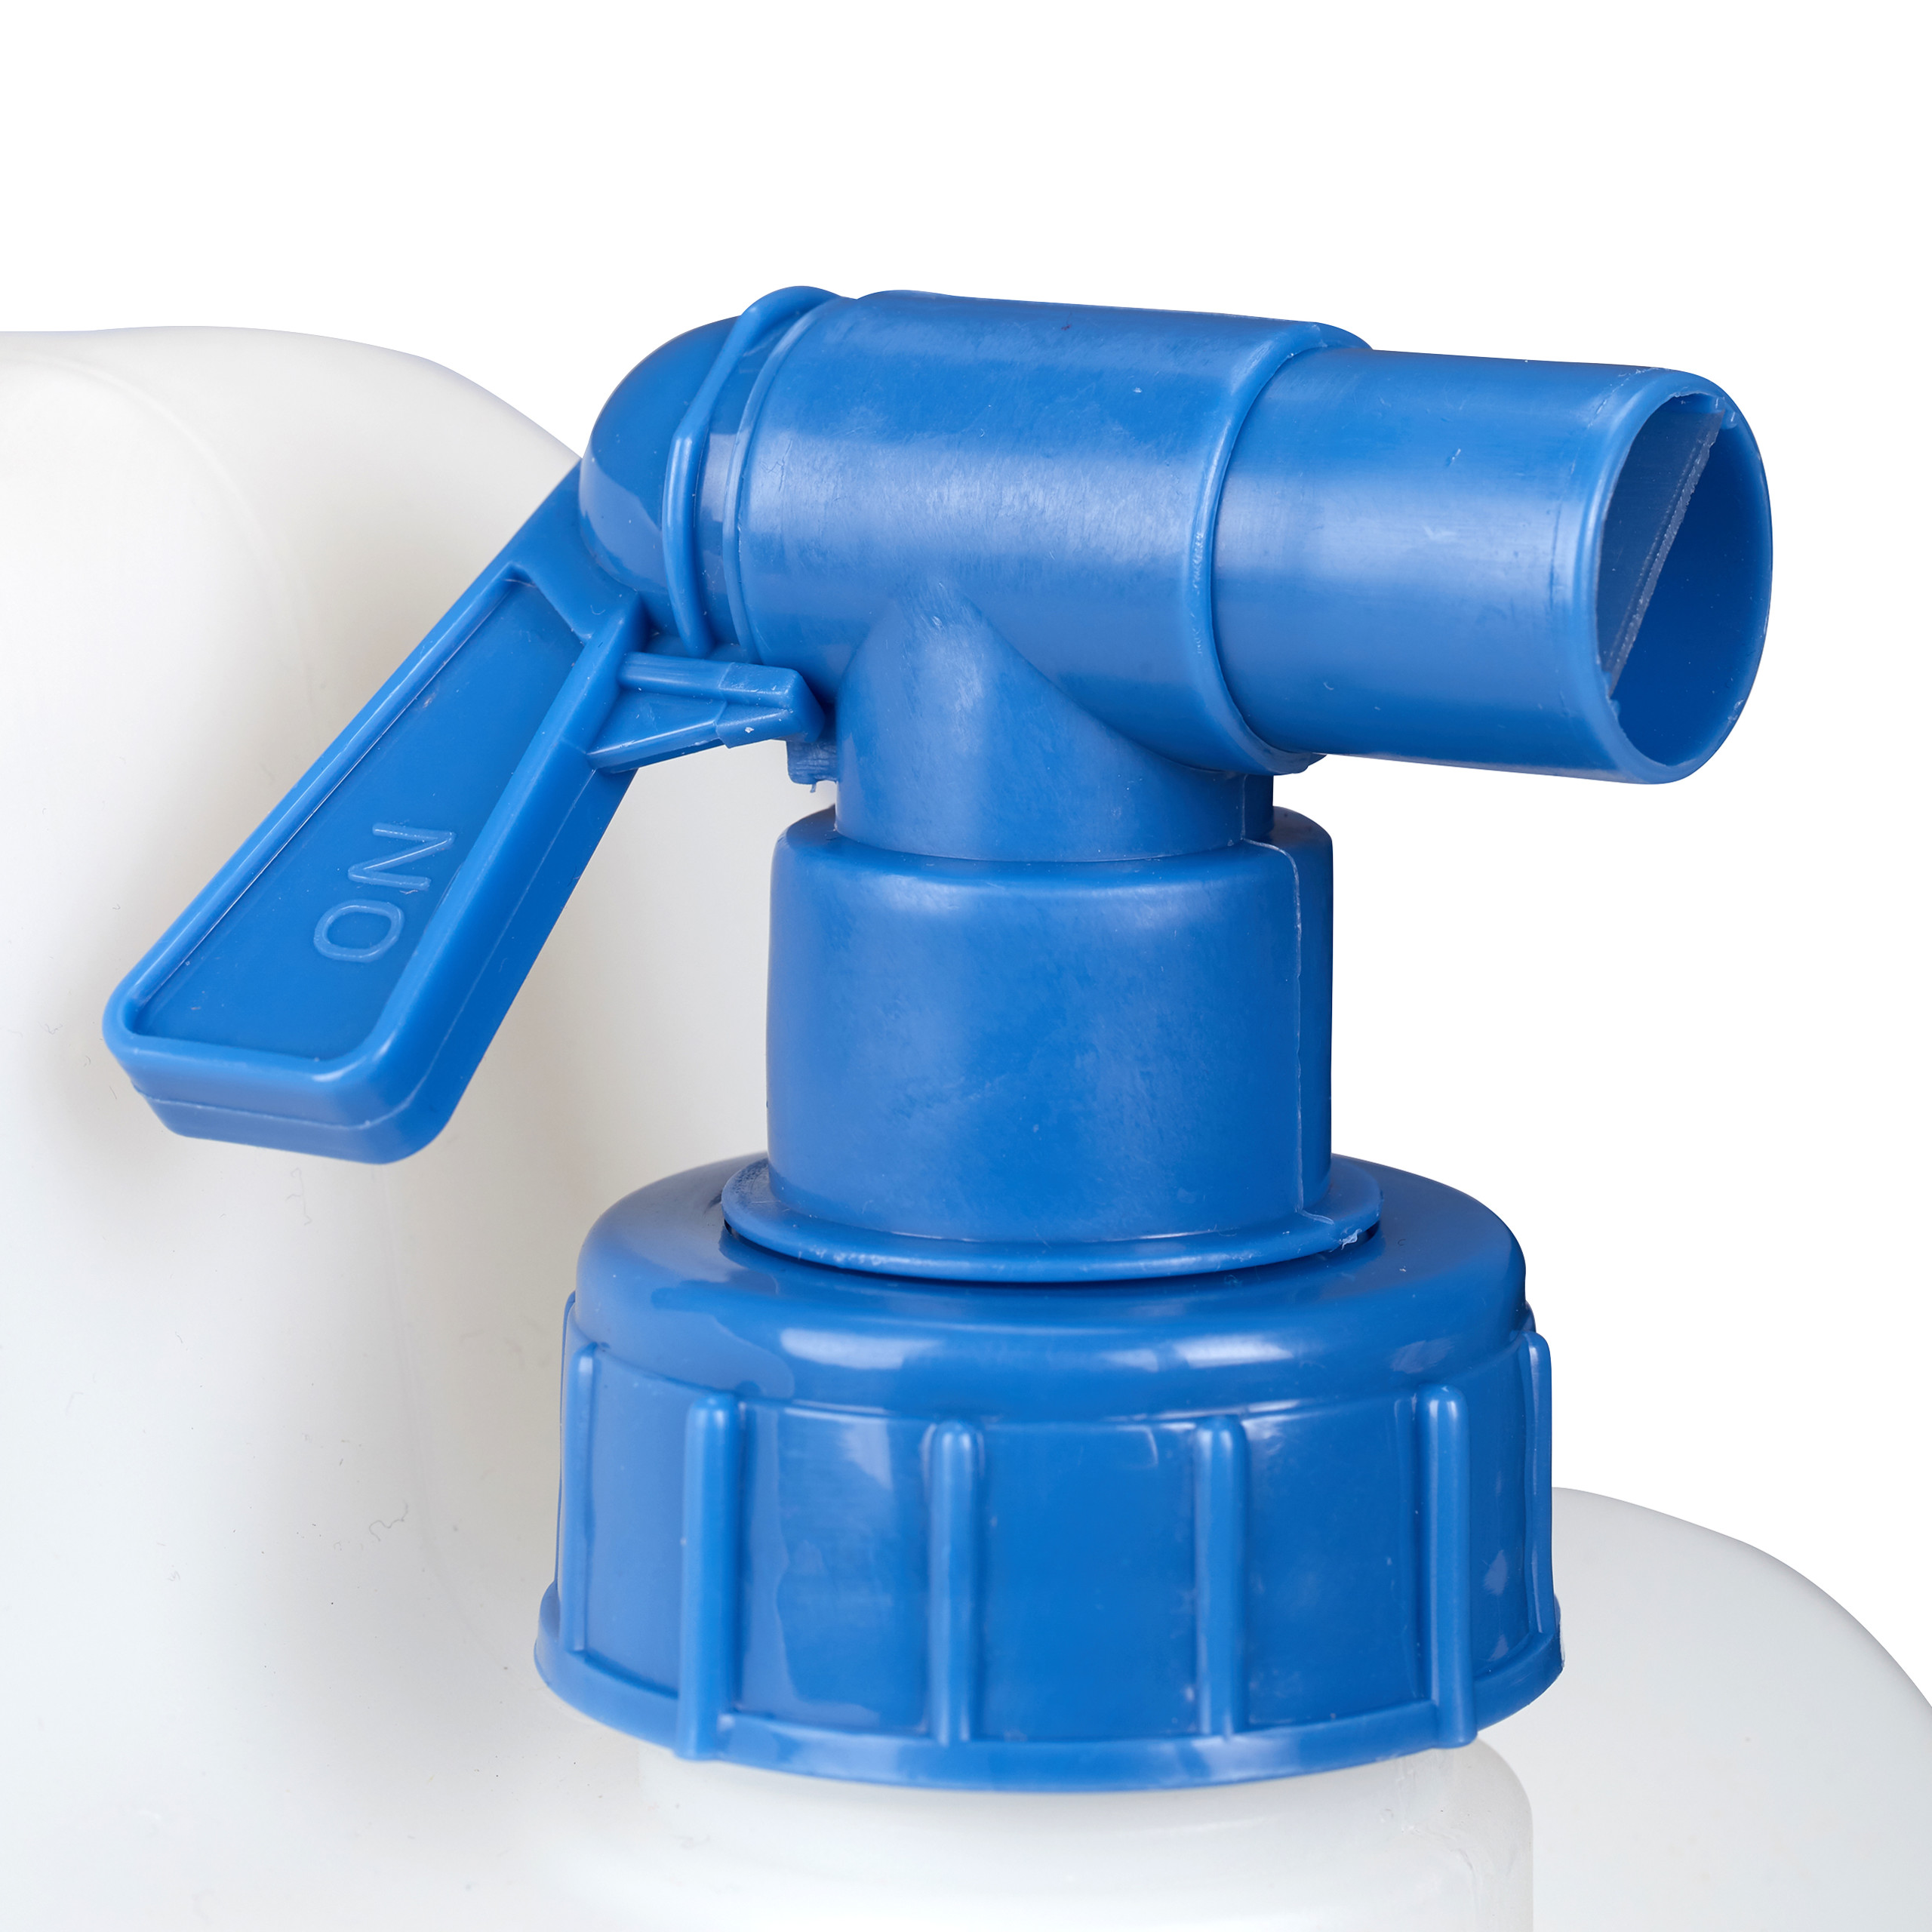 thumbnail 40 - Water Canister, Spigot, Jerrycan, Water Jug, Plastic Container